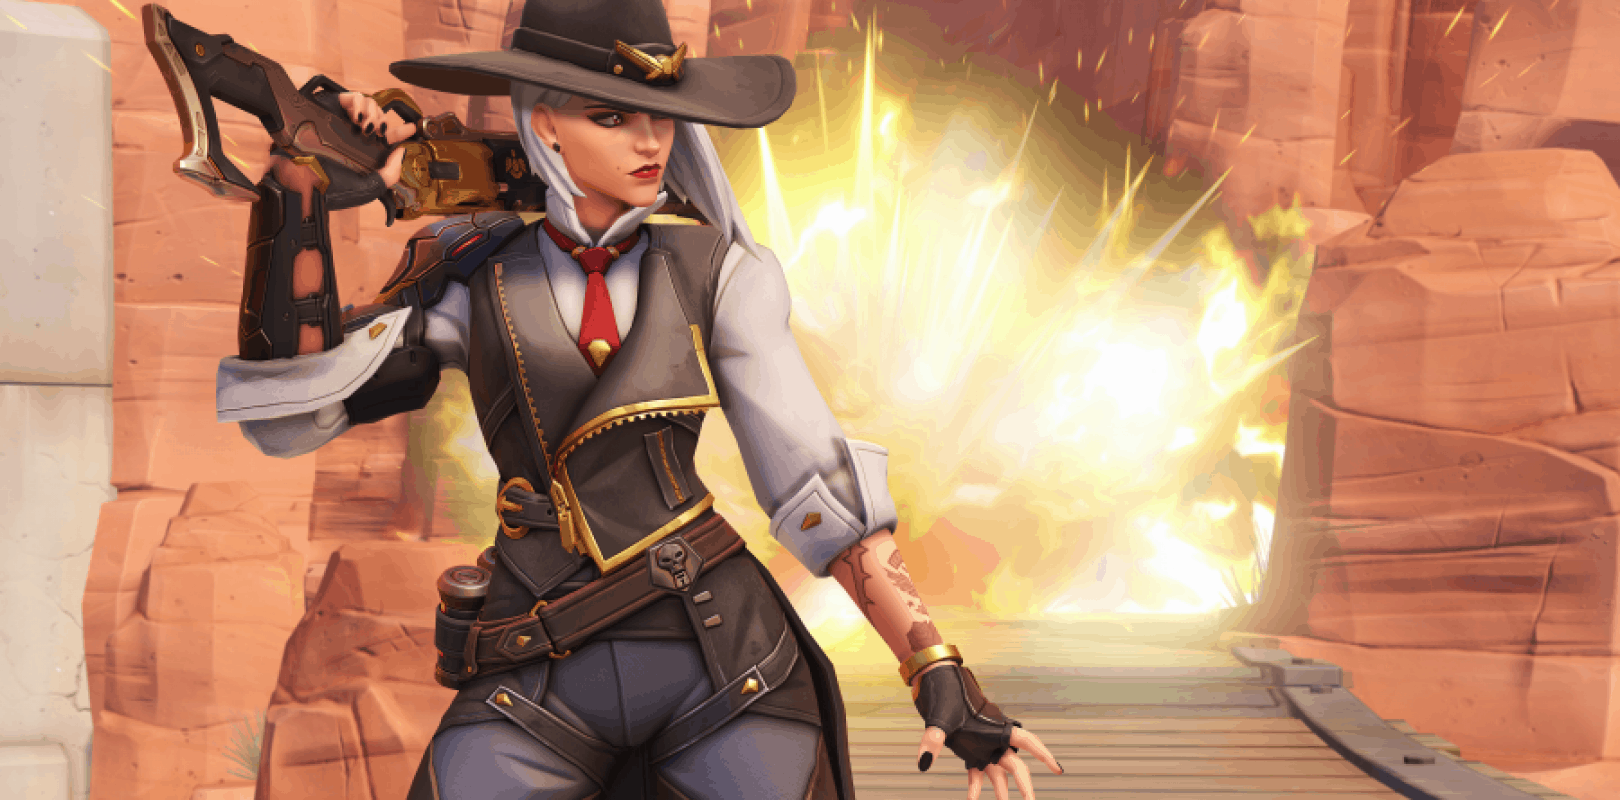 Overwatch 1 30 0 1 Patch Notes | NEW HERO ASHE ! - All Patch